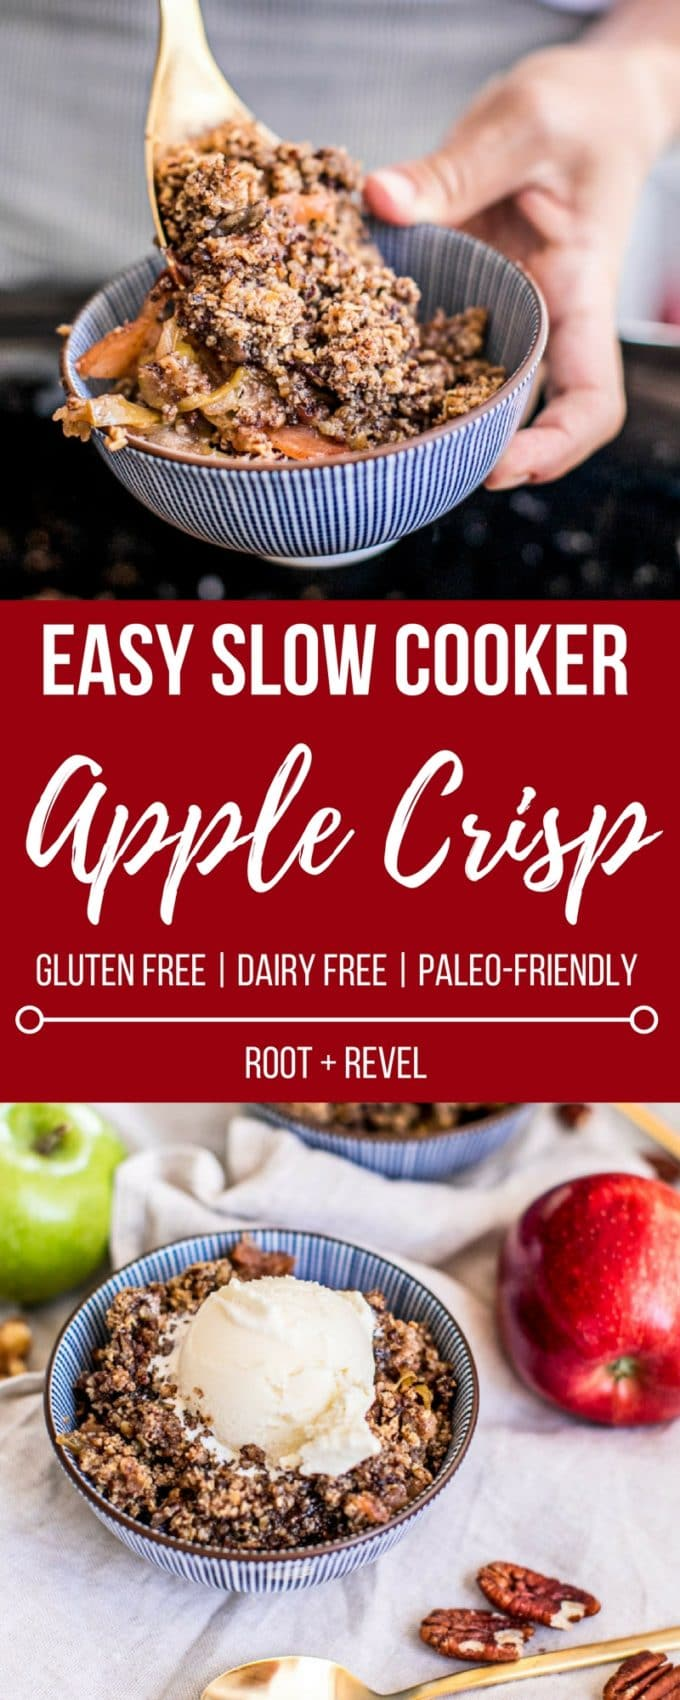 If you're looking for a healthy Thanksgiving dessert, this slow cooker apple crisp recipe is for YOU! It's so easy to make--in fact, this gluten free apple pie is made with just 1 pot (your crockpot) and is full of delicious warming spices and seasonal apples. Plus, the crumble topping is bursting with healthy fats and fiber from the oats, nuts, and ghee. Vegetarian and Paleo friendly, too, with a savvy substitution!